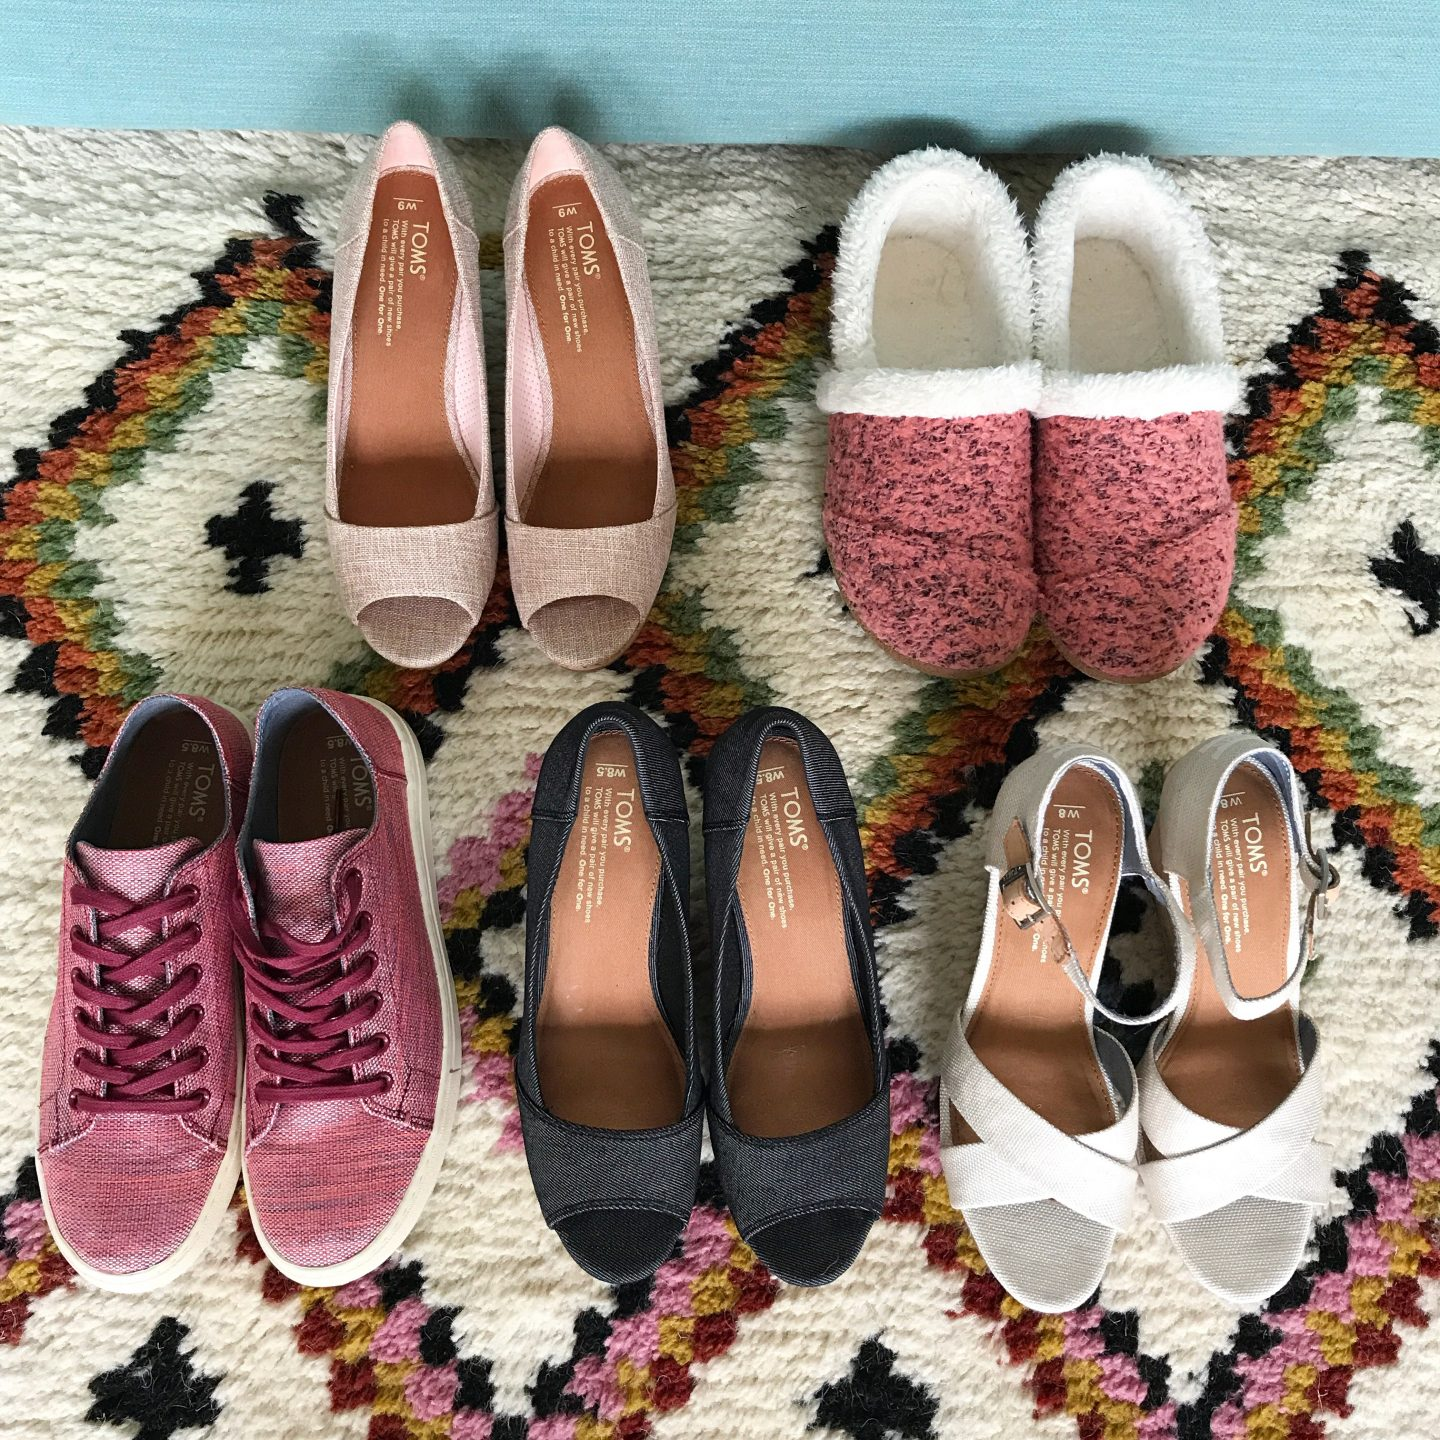 Toms Shoes Holiday Collection